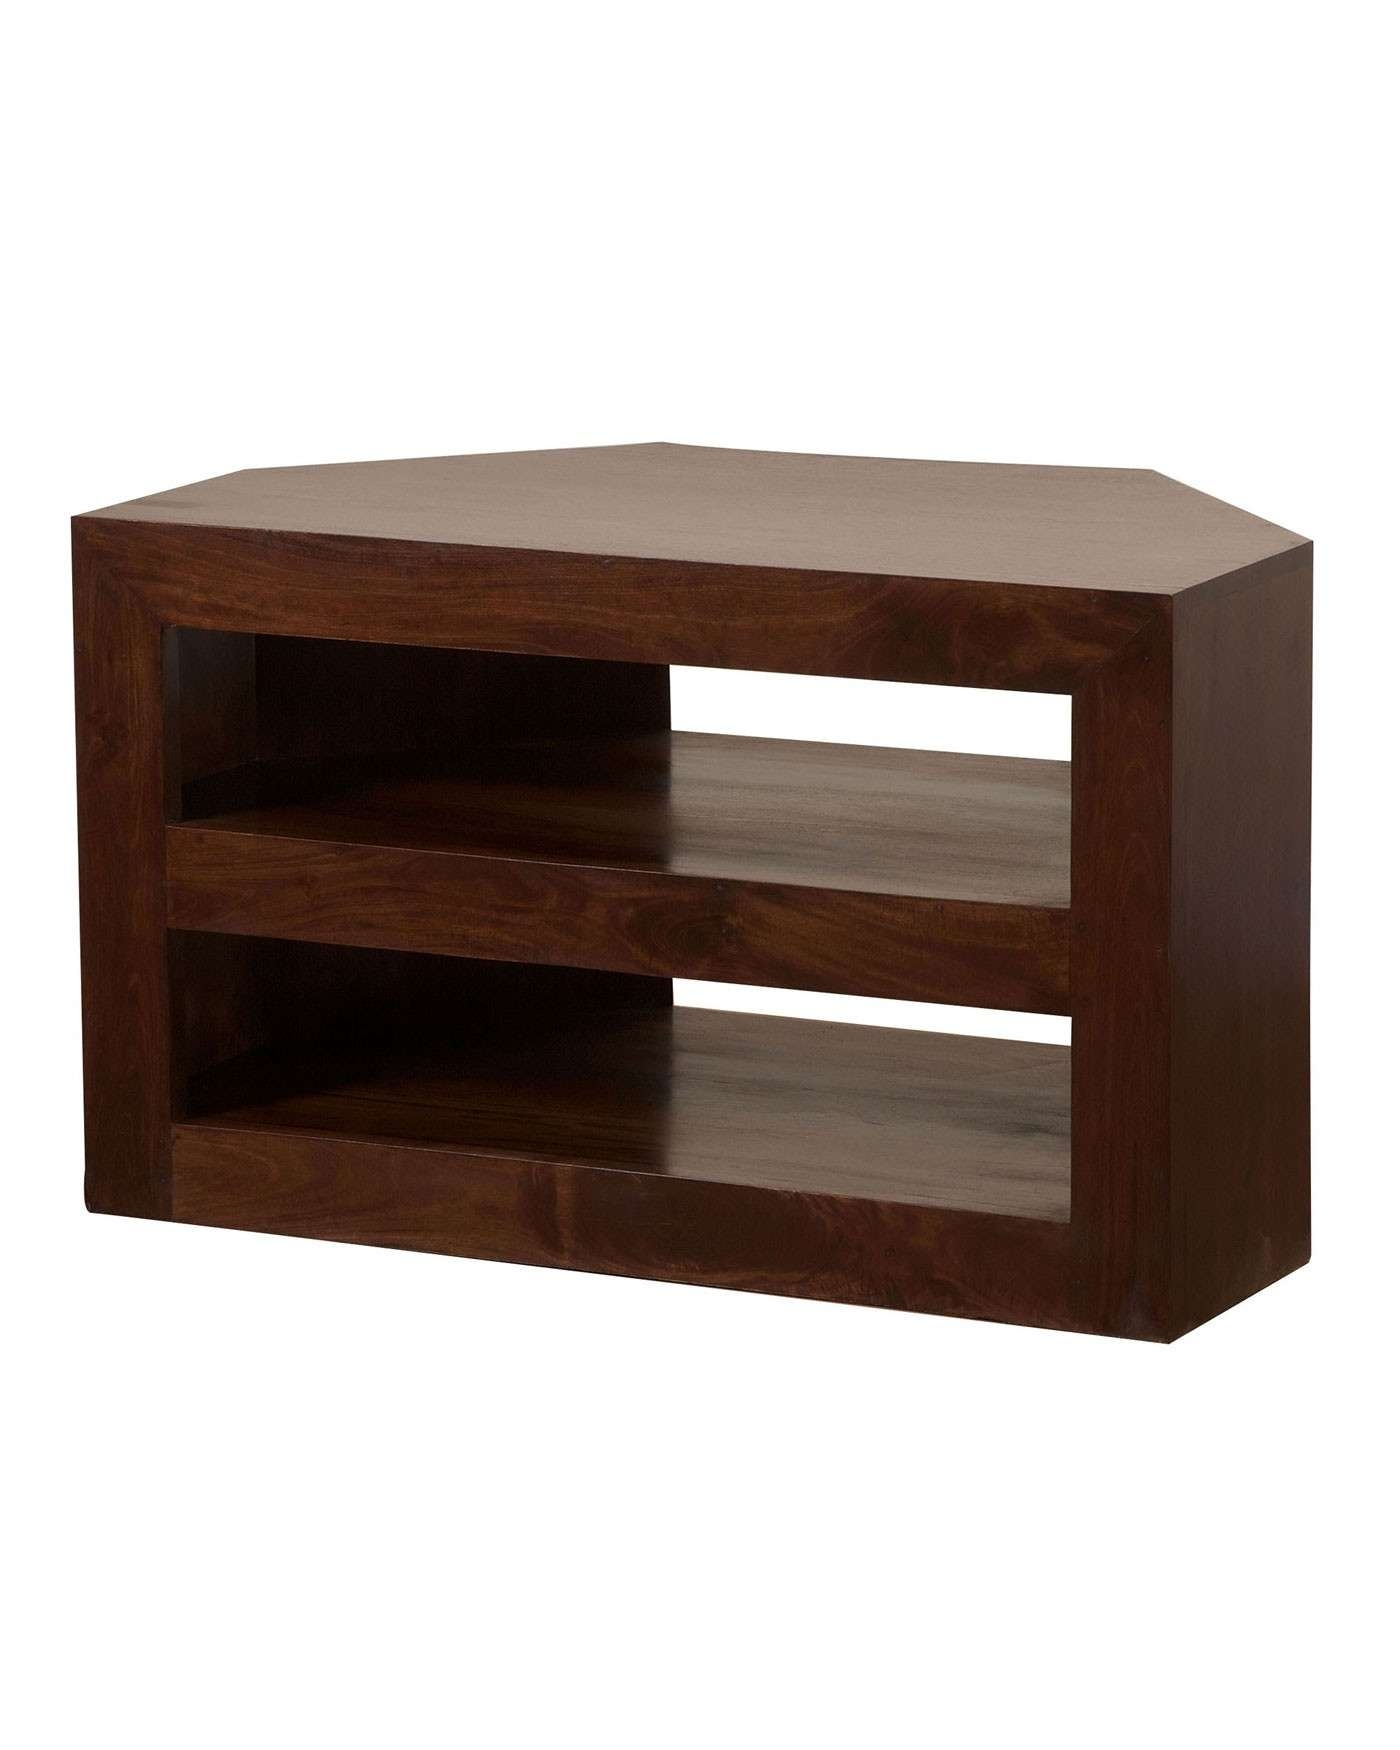 Dakota Corner Tv Unit Dark Shade – Homescapes Throughout Small Corner Tv Cabinets (View 6 of 20)